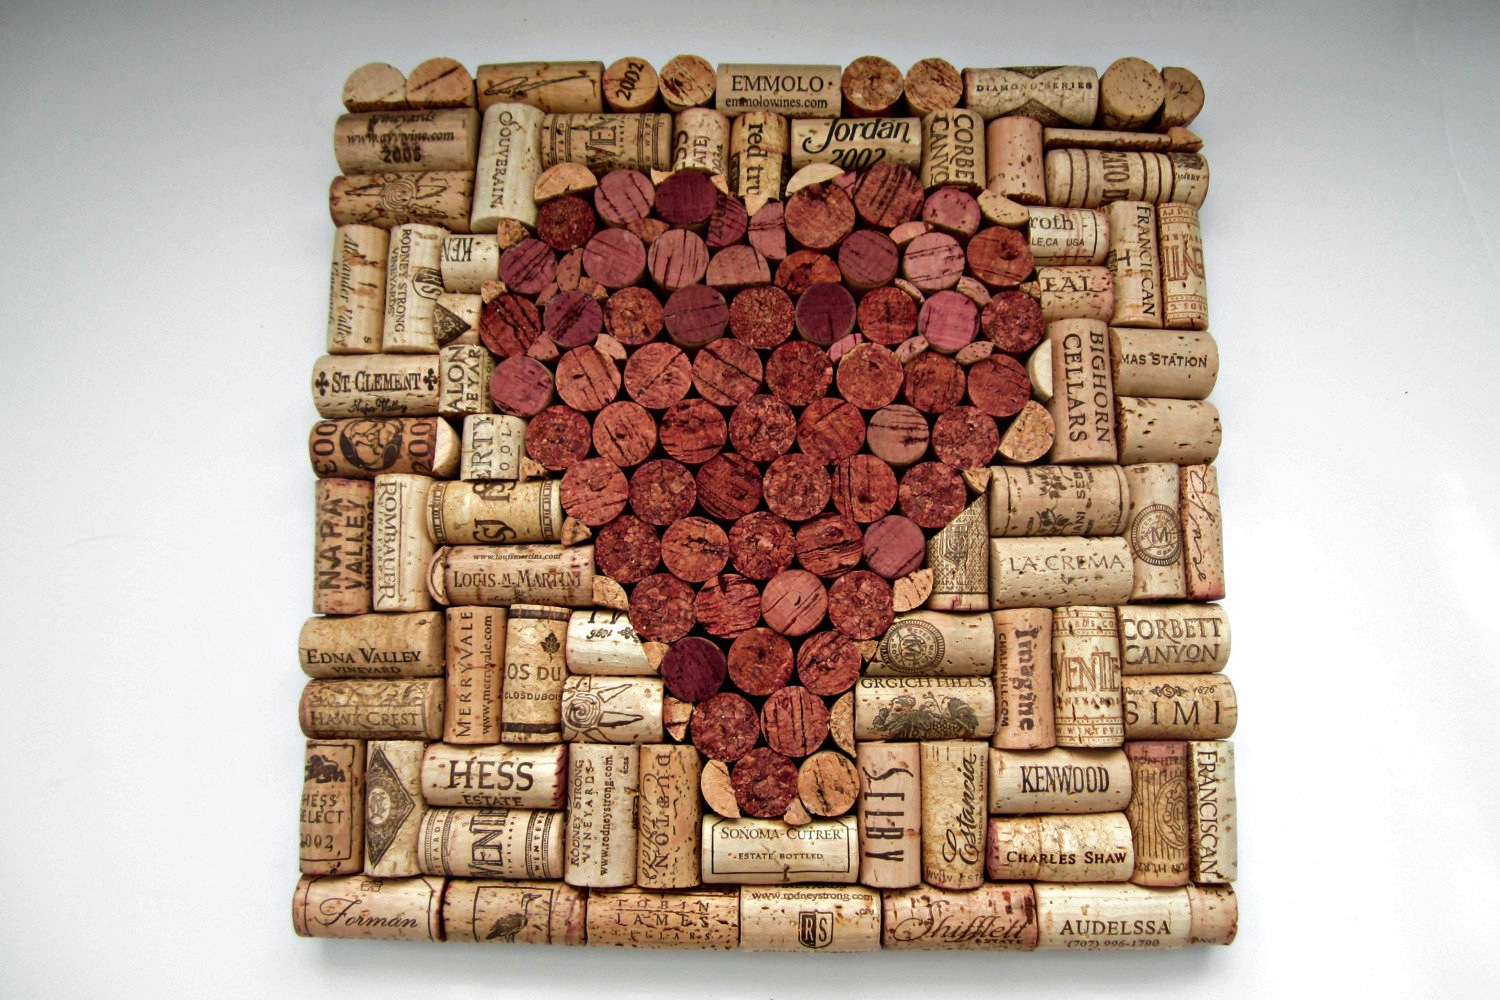 Handmade-wedding-finds-for-unique-weddings-cork-art.original